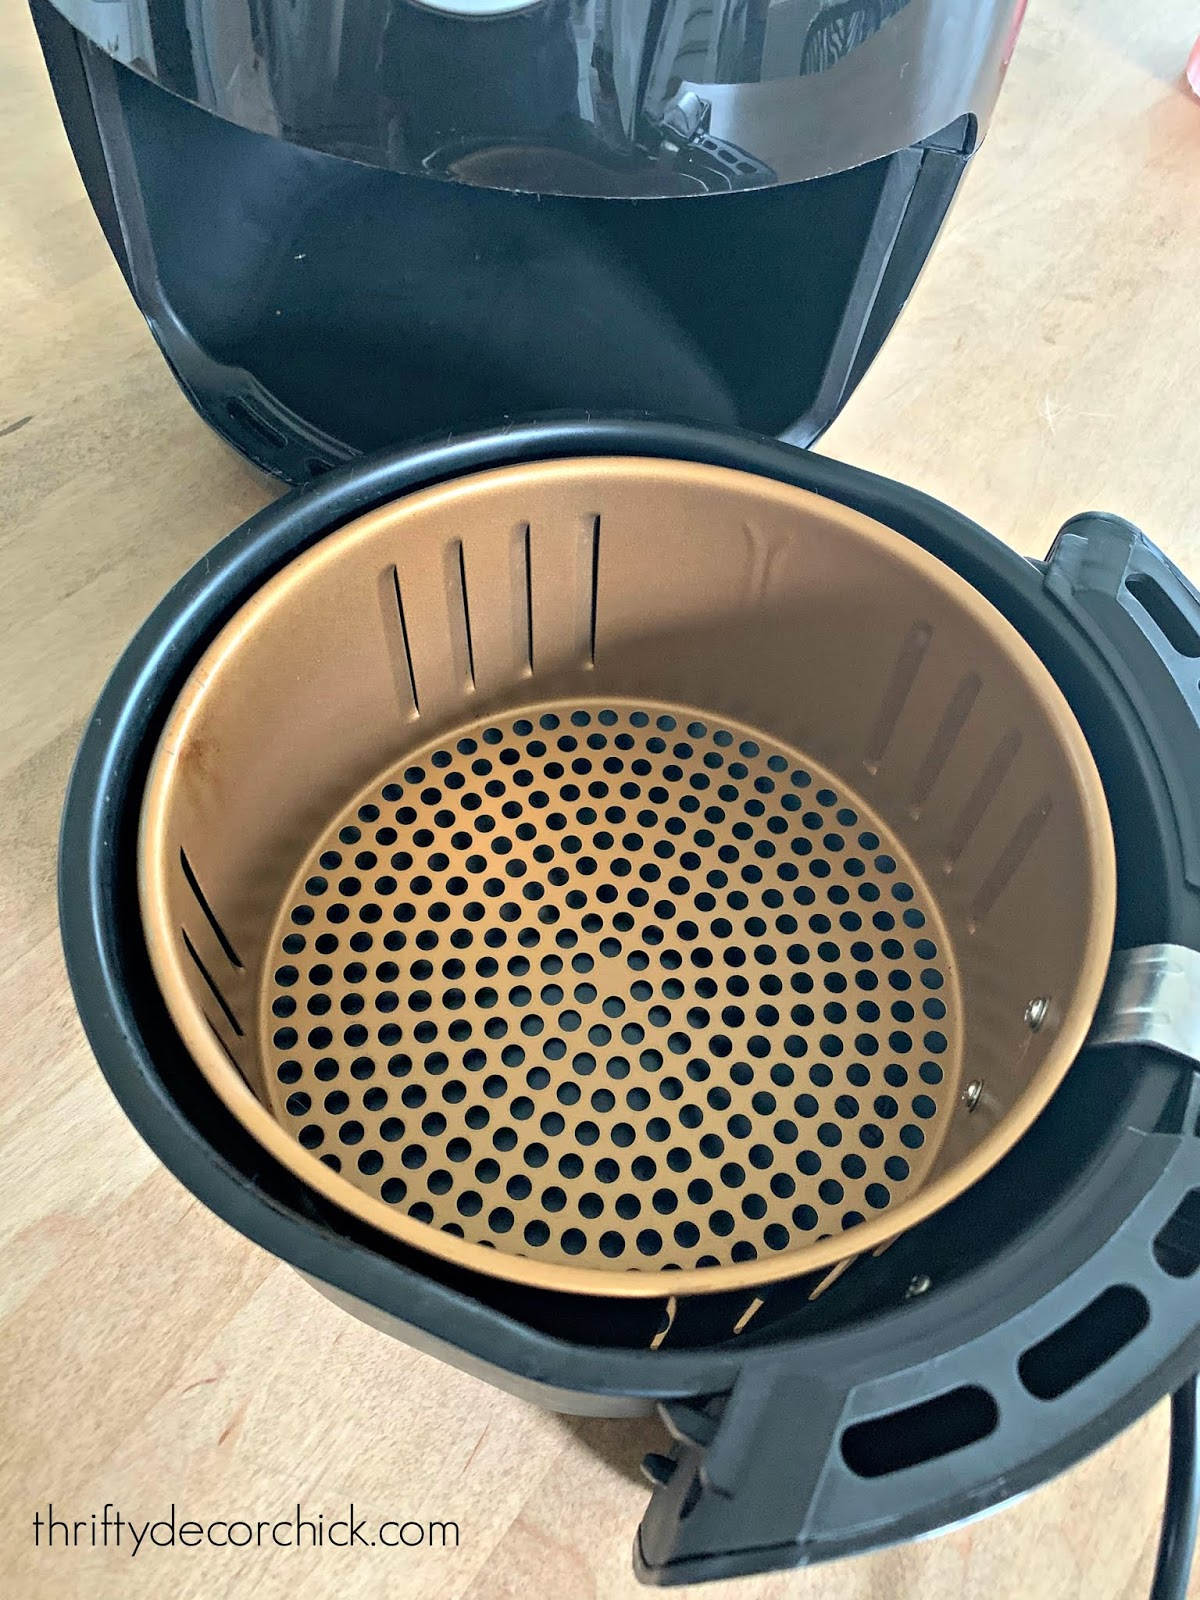 air fryer for making quick and easy meals